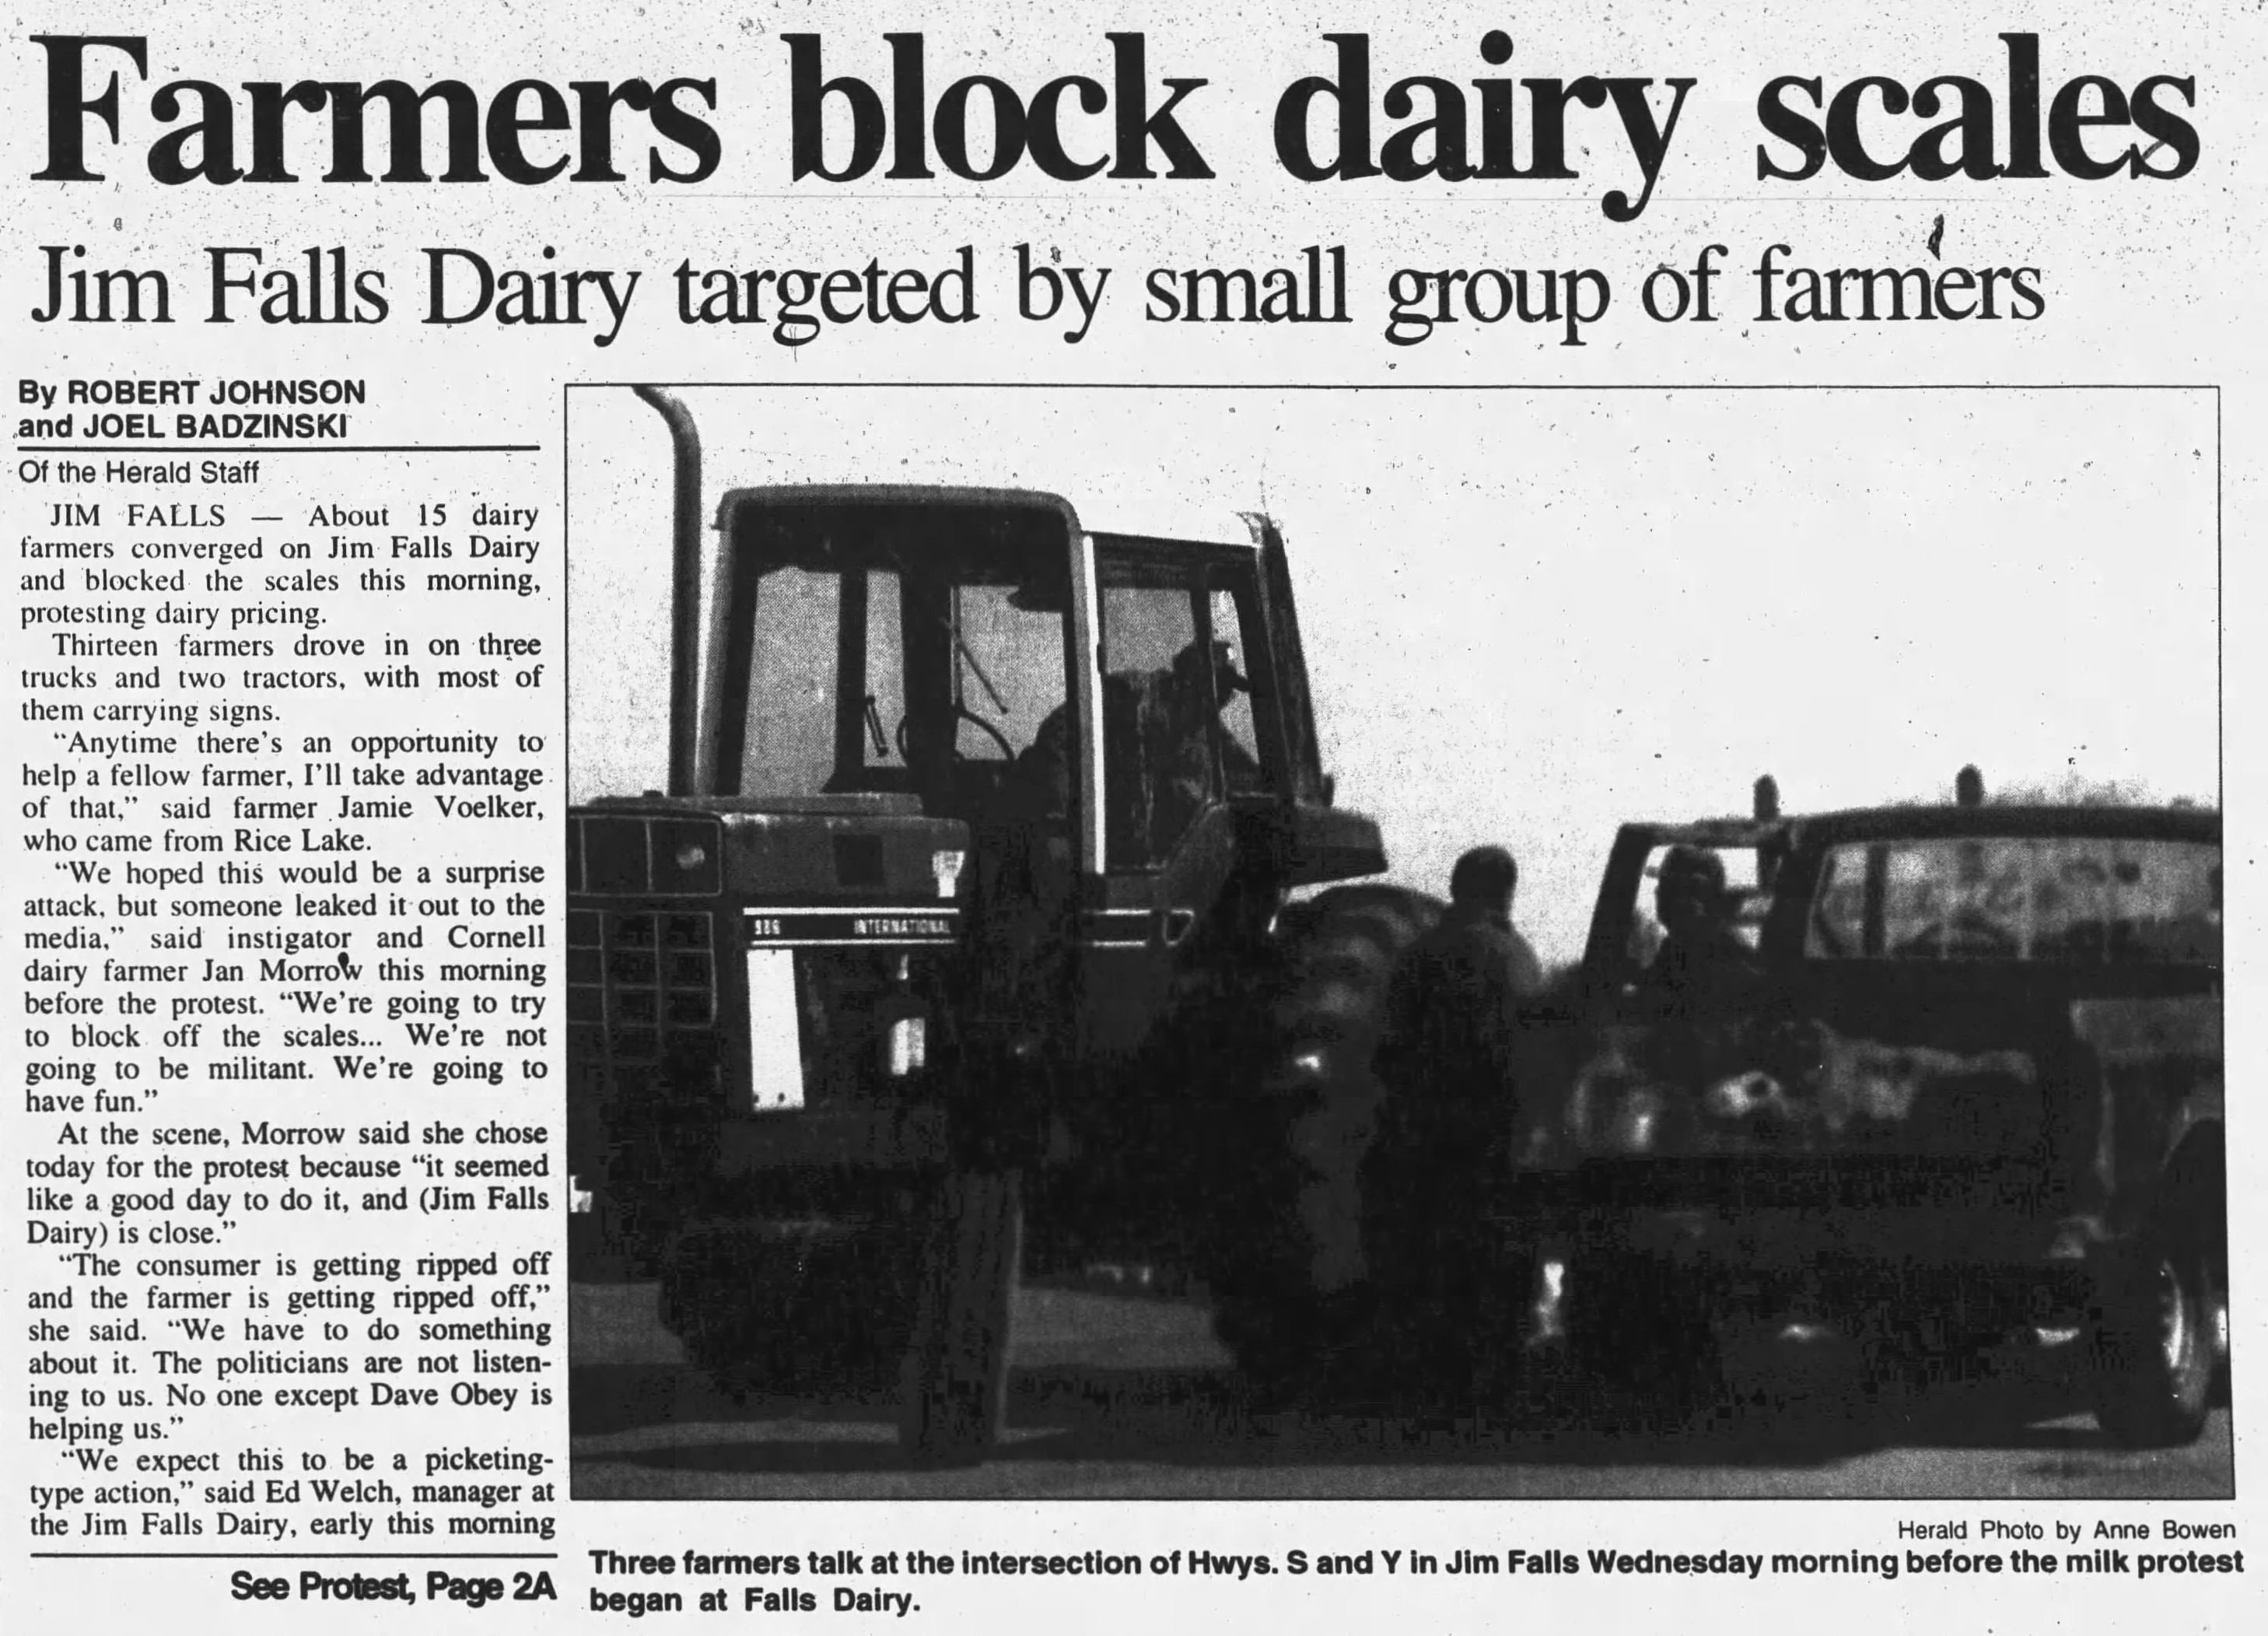 Newspaper clipping showing creamery scales being blocked